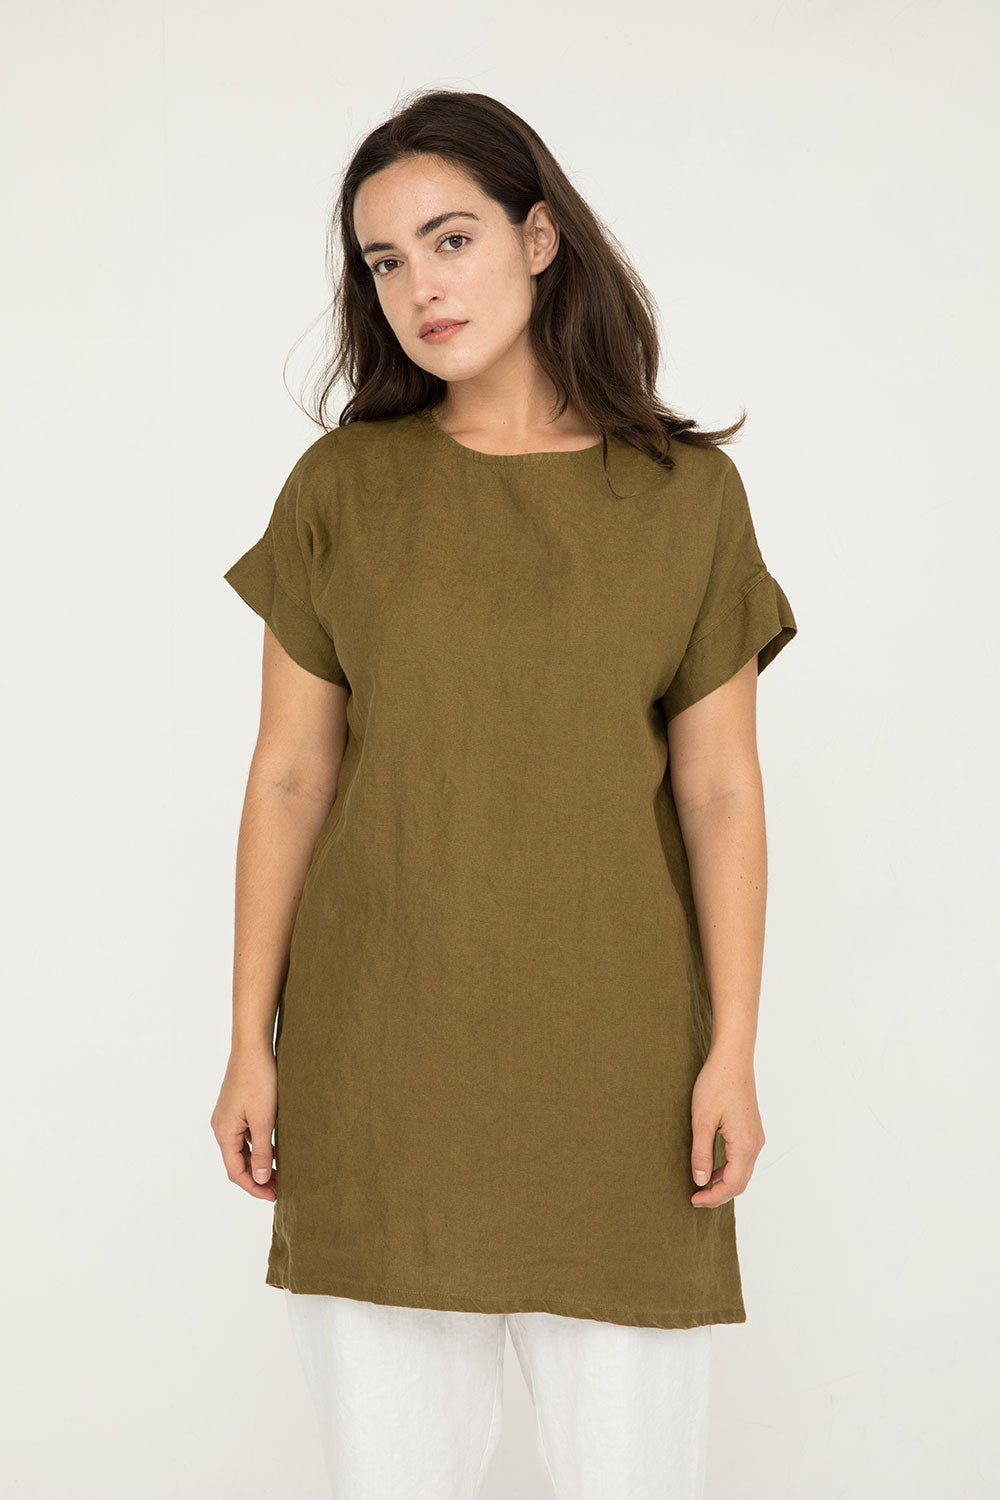 Georgia Dress in Midweight Linen Olive - Natalie-OS